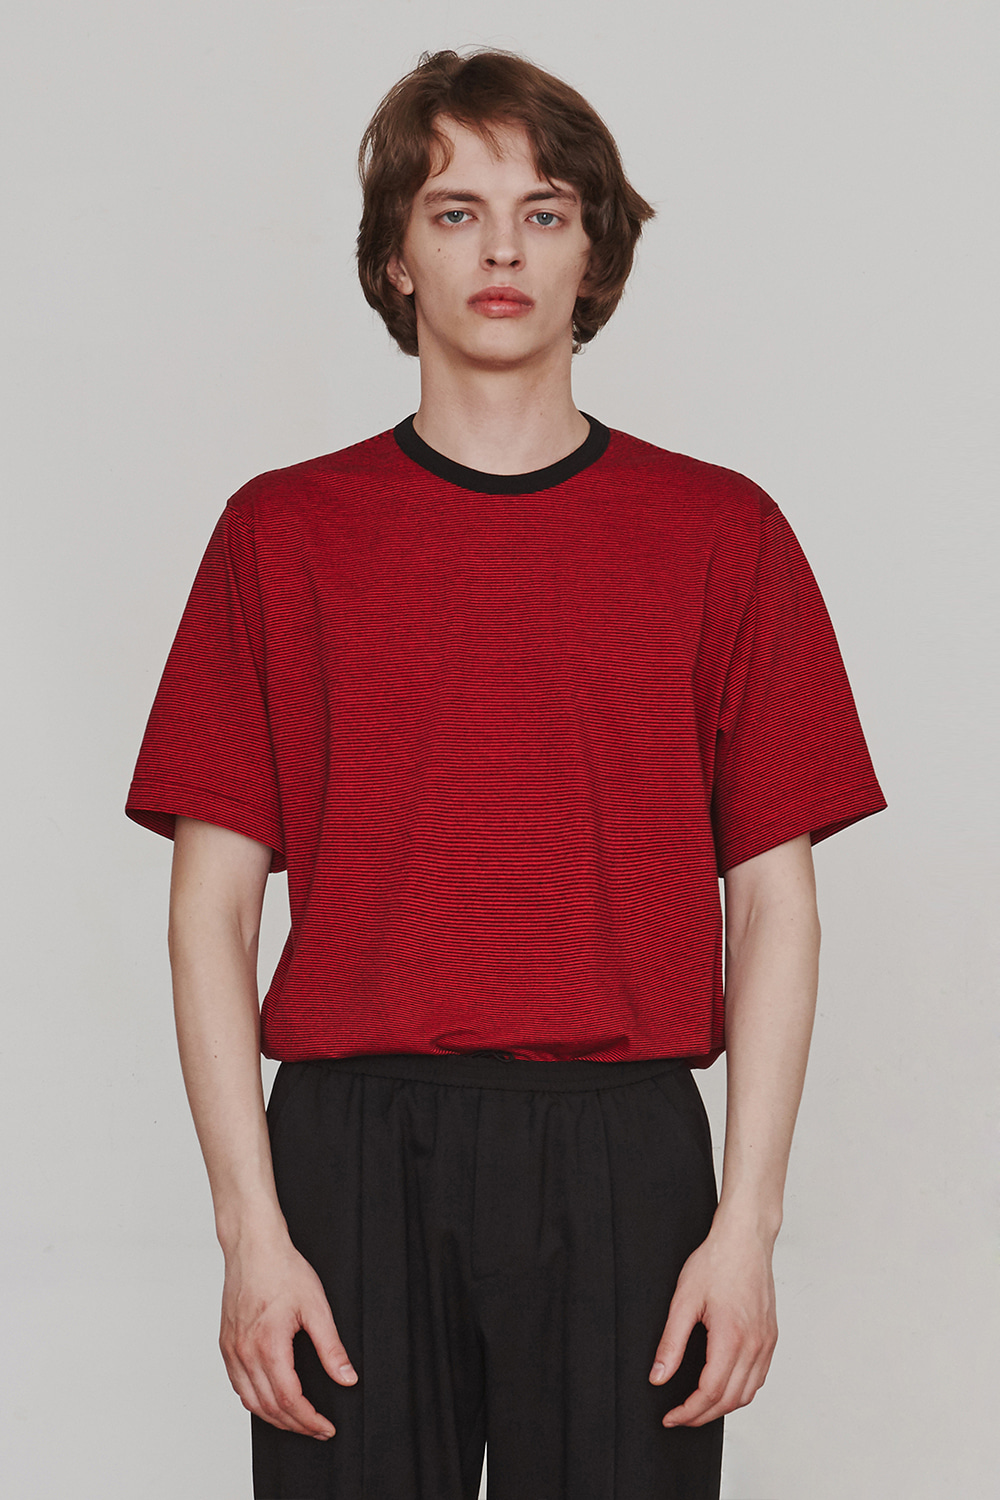 [ESFAI] B.R.B T Shirt (Red)